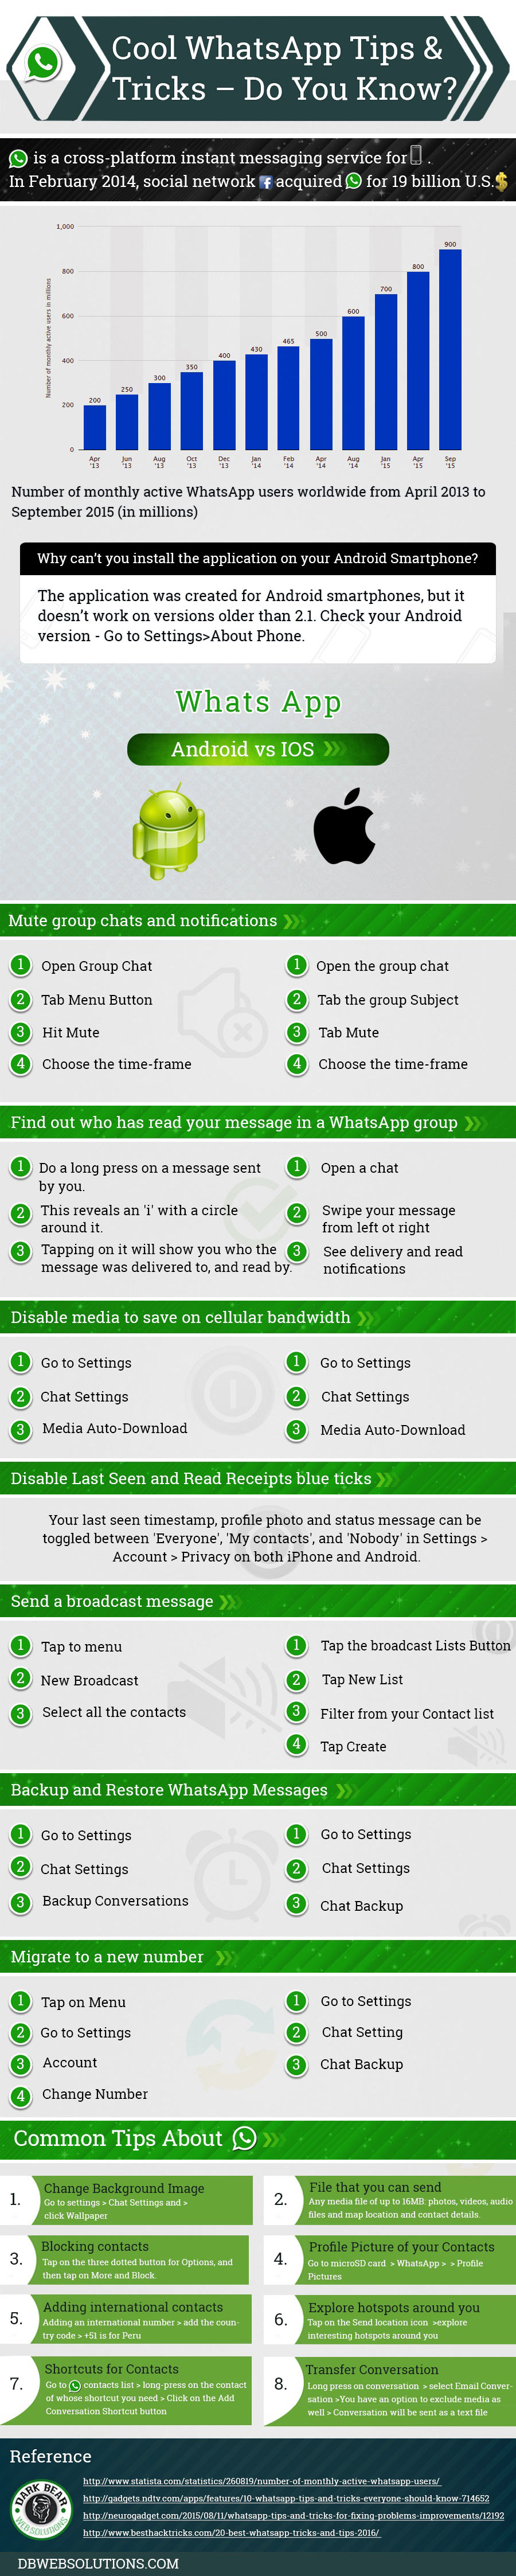 whatsapp-tips-tricks-hacks